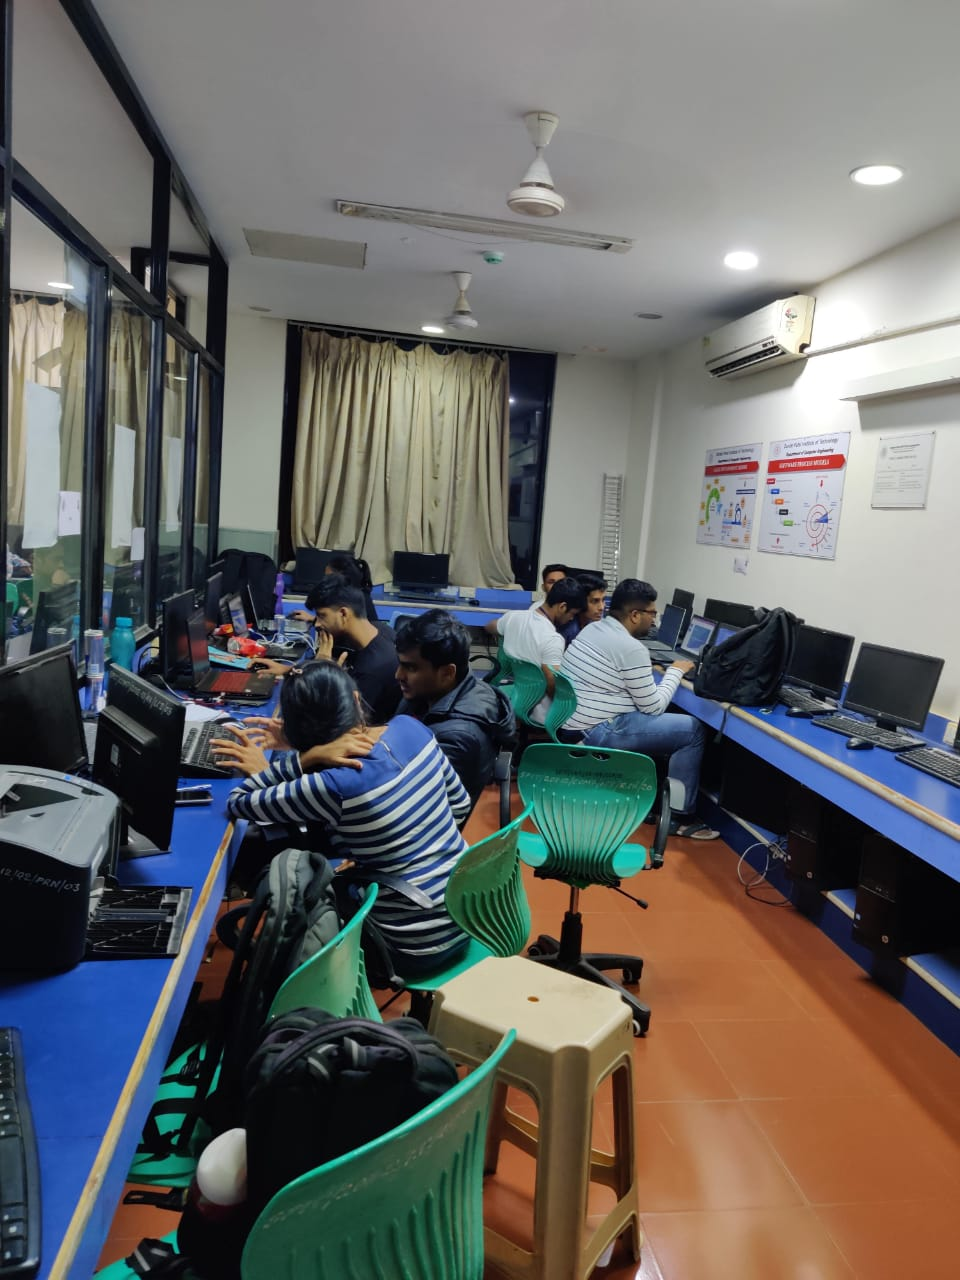 Hackers in action at the csi hackathon